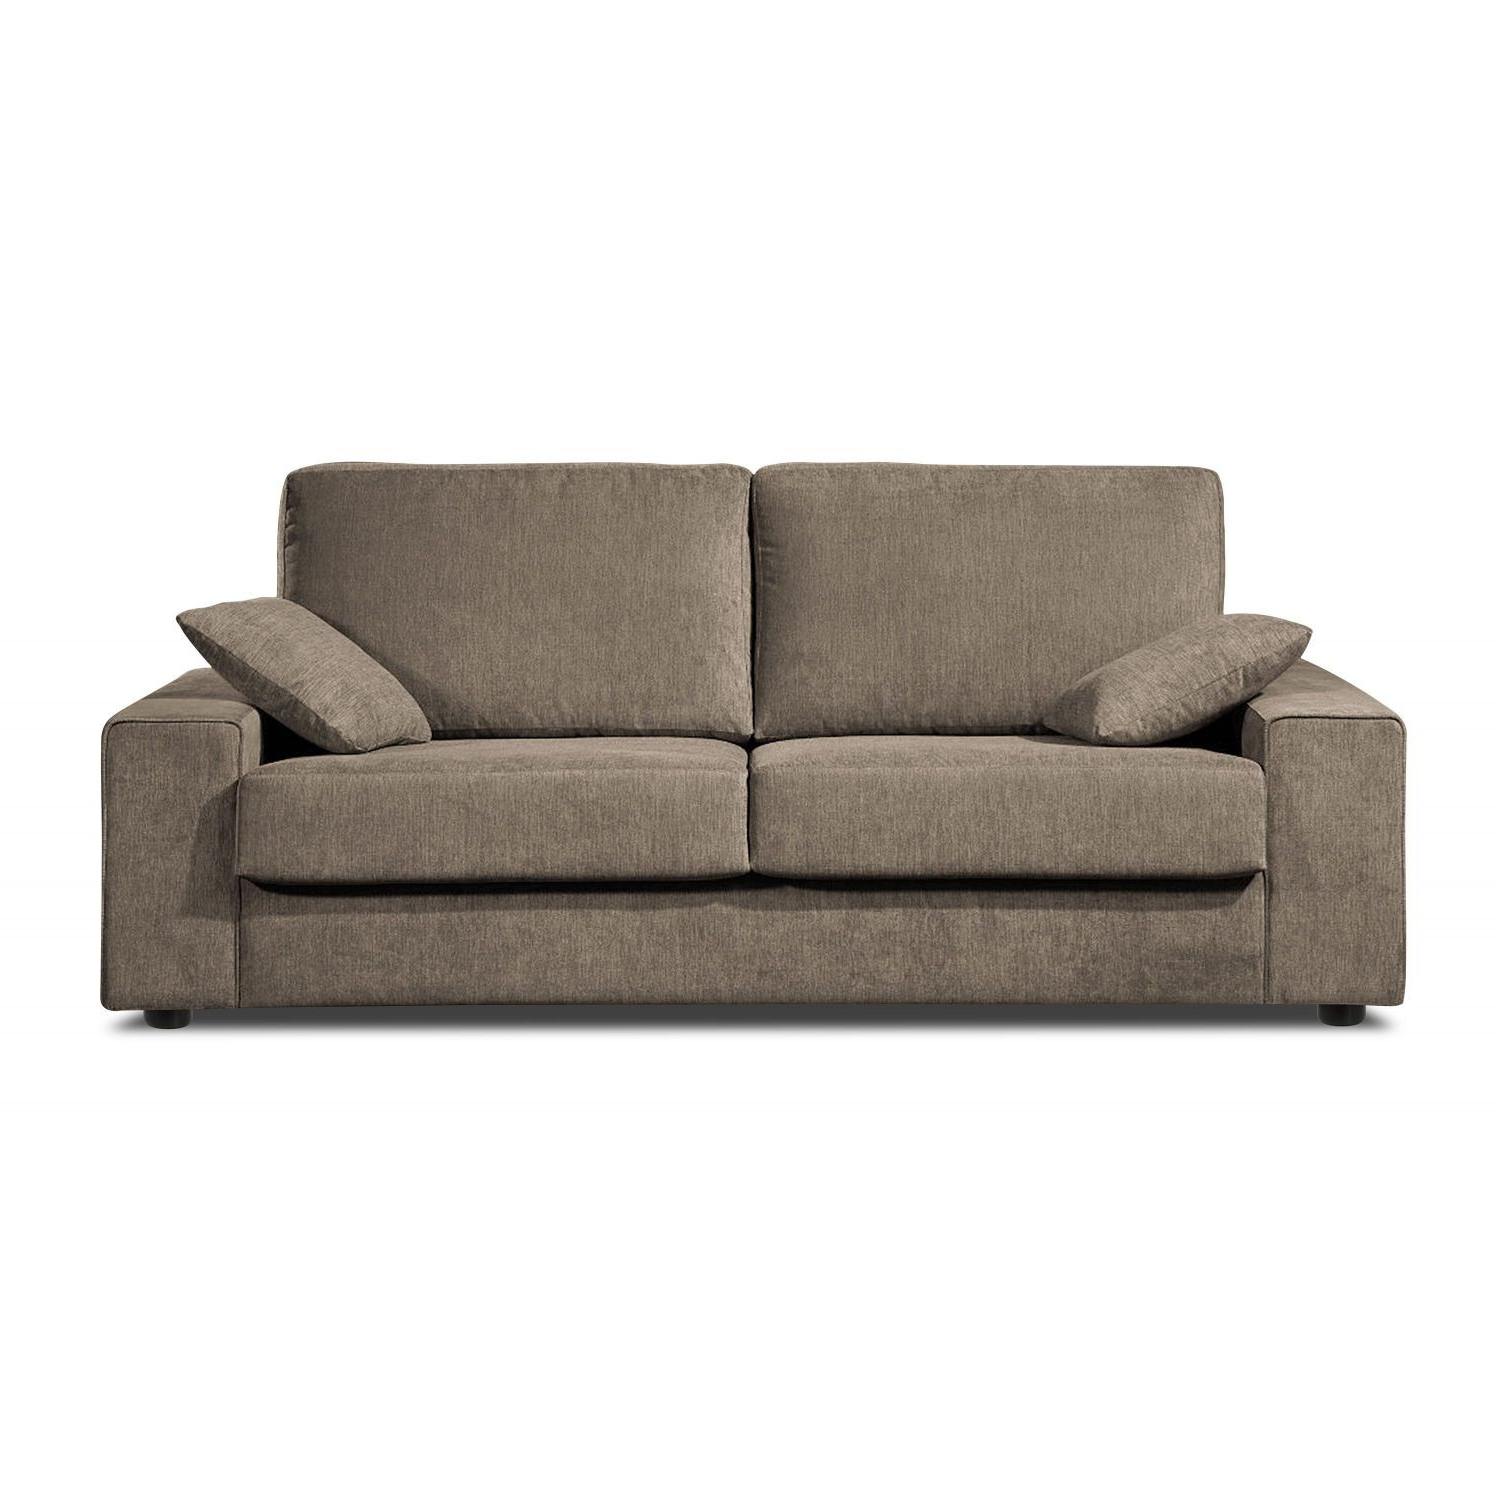 Sofas Muy Baratos S5d8 sofas Muy Baratos Online sof 3 Plazas Barato 190 Cm 2 Cojines